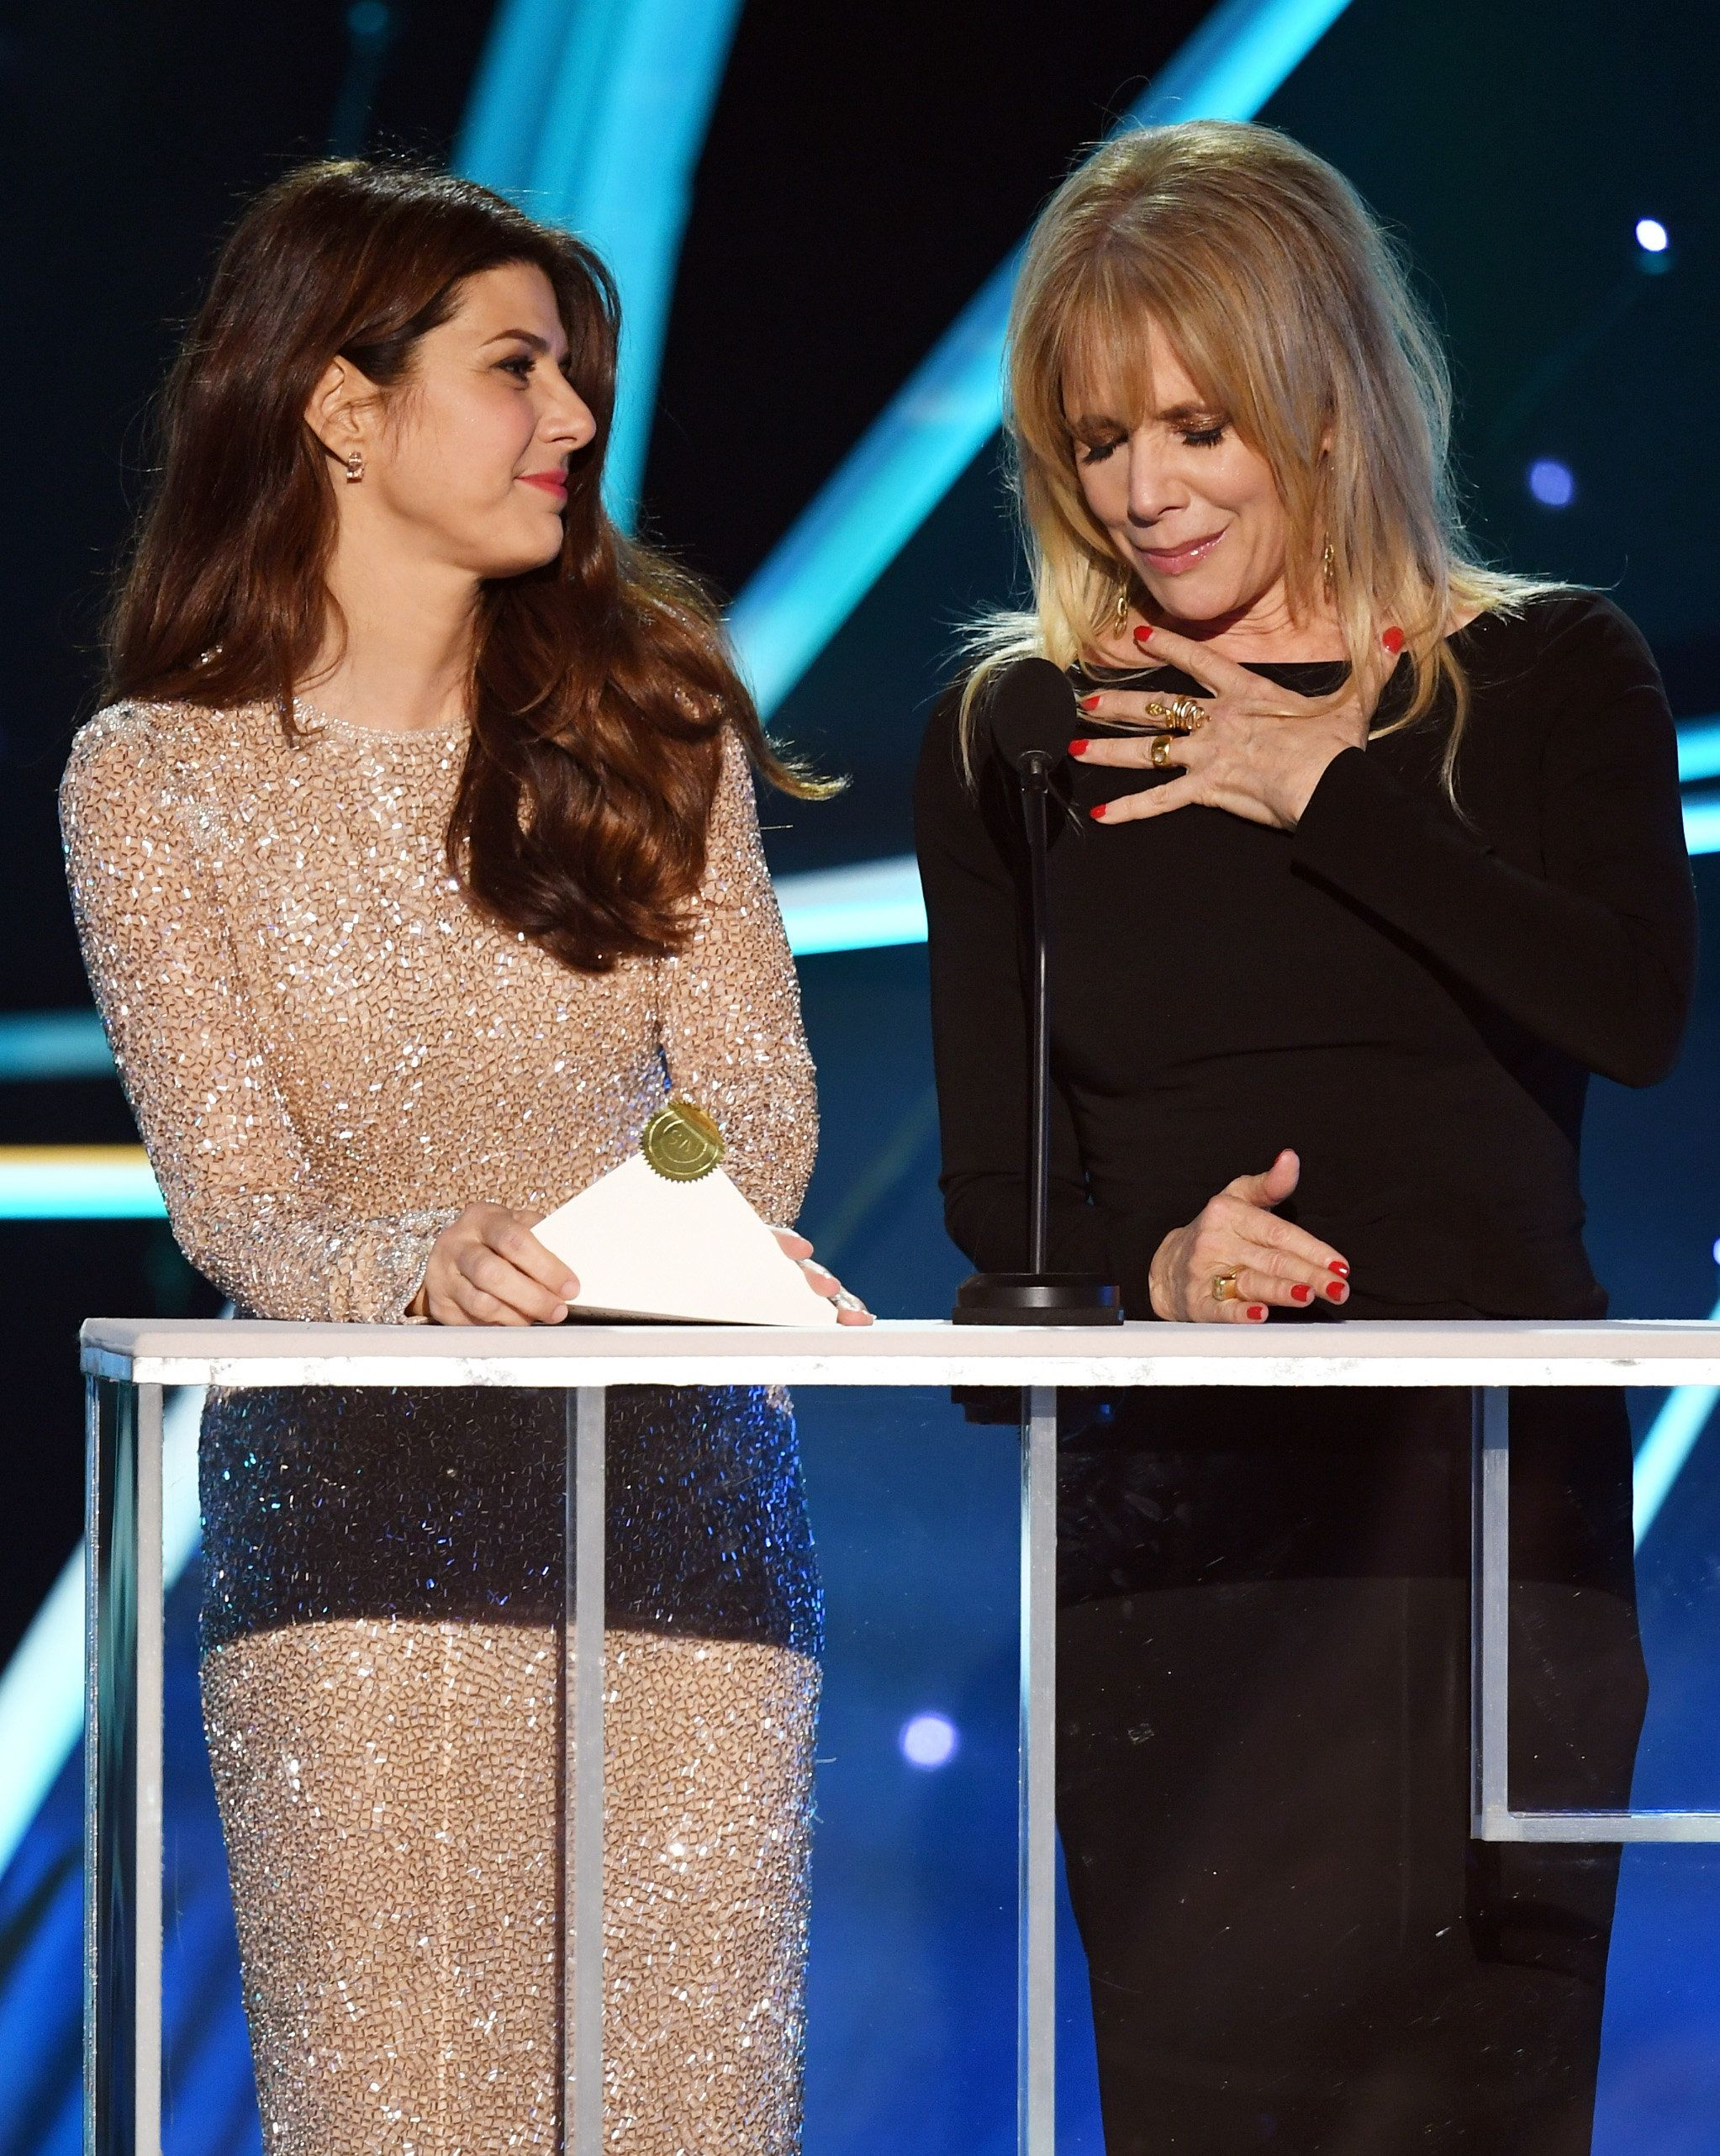 LOS ANGELES, CA - JANUARY 21:  Actors Marisa Tomei (L) and Rosanna Arquette speak onstage during the 24th Annual Screen Actors Guild Awards at The Shrine Auditorium on January 21, 2018 in Los Angeles, California. 27522_013  (Photo by Kevin Winter/Getty Images)